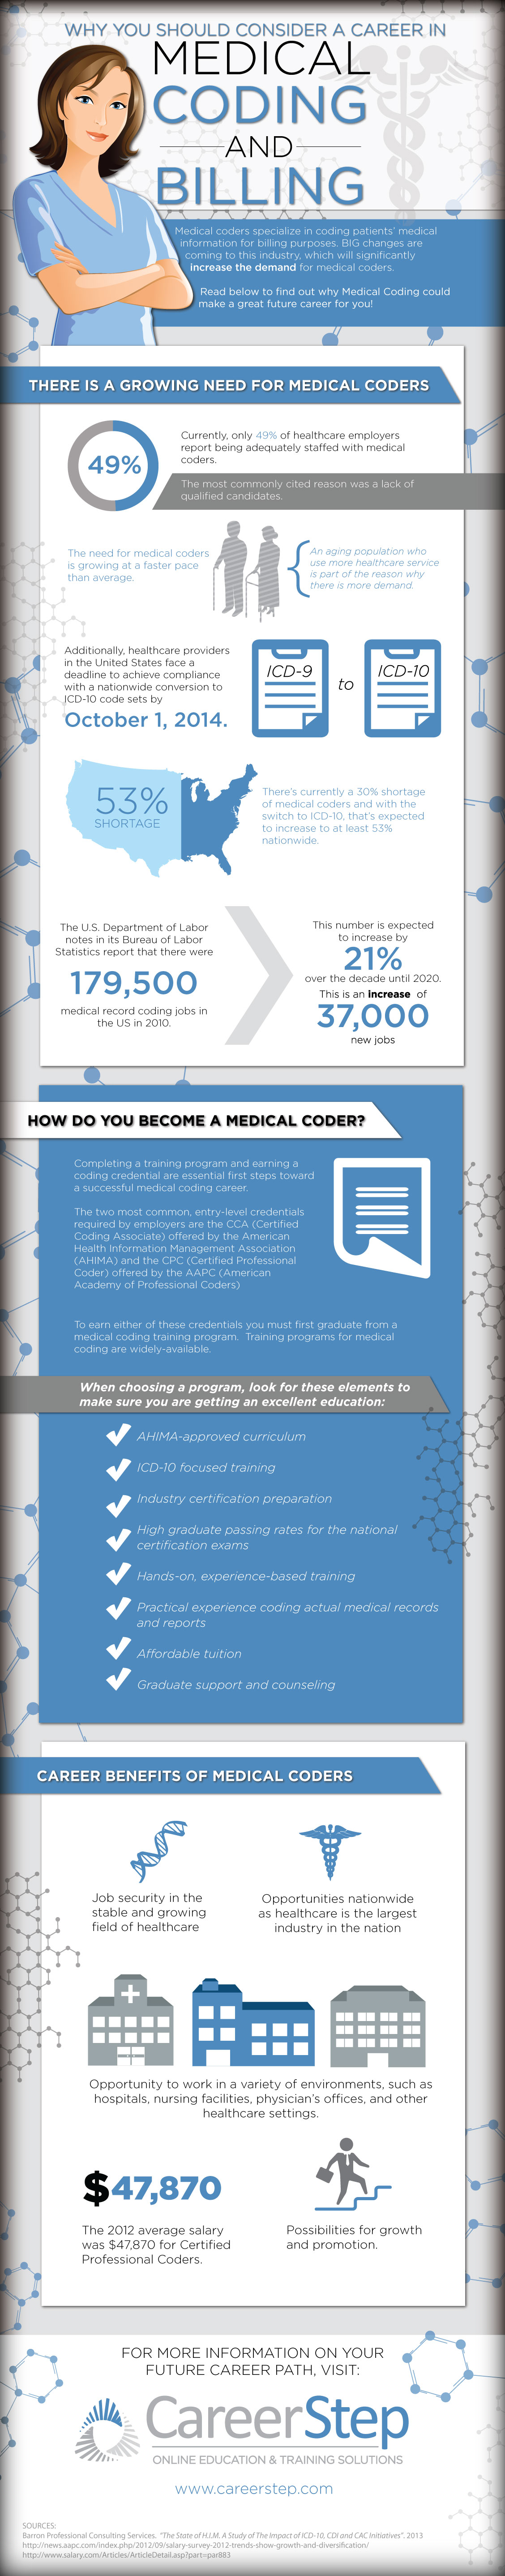 medical billing and coding 1 Earn your medical billing and coding certification 100% online with drexel university's accredited degree program advance your career and apply now.